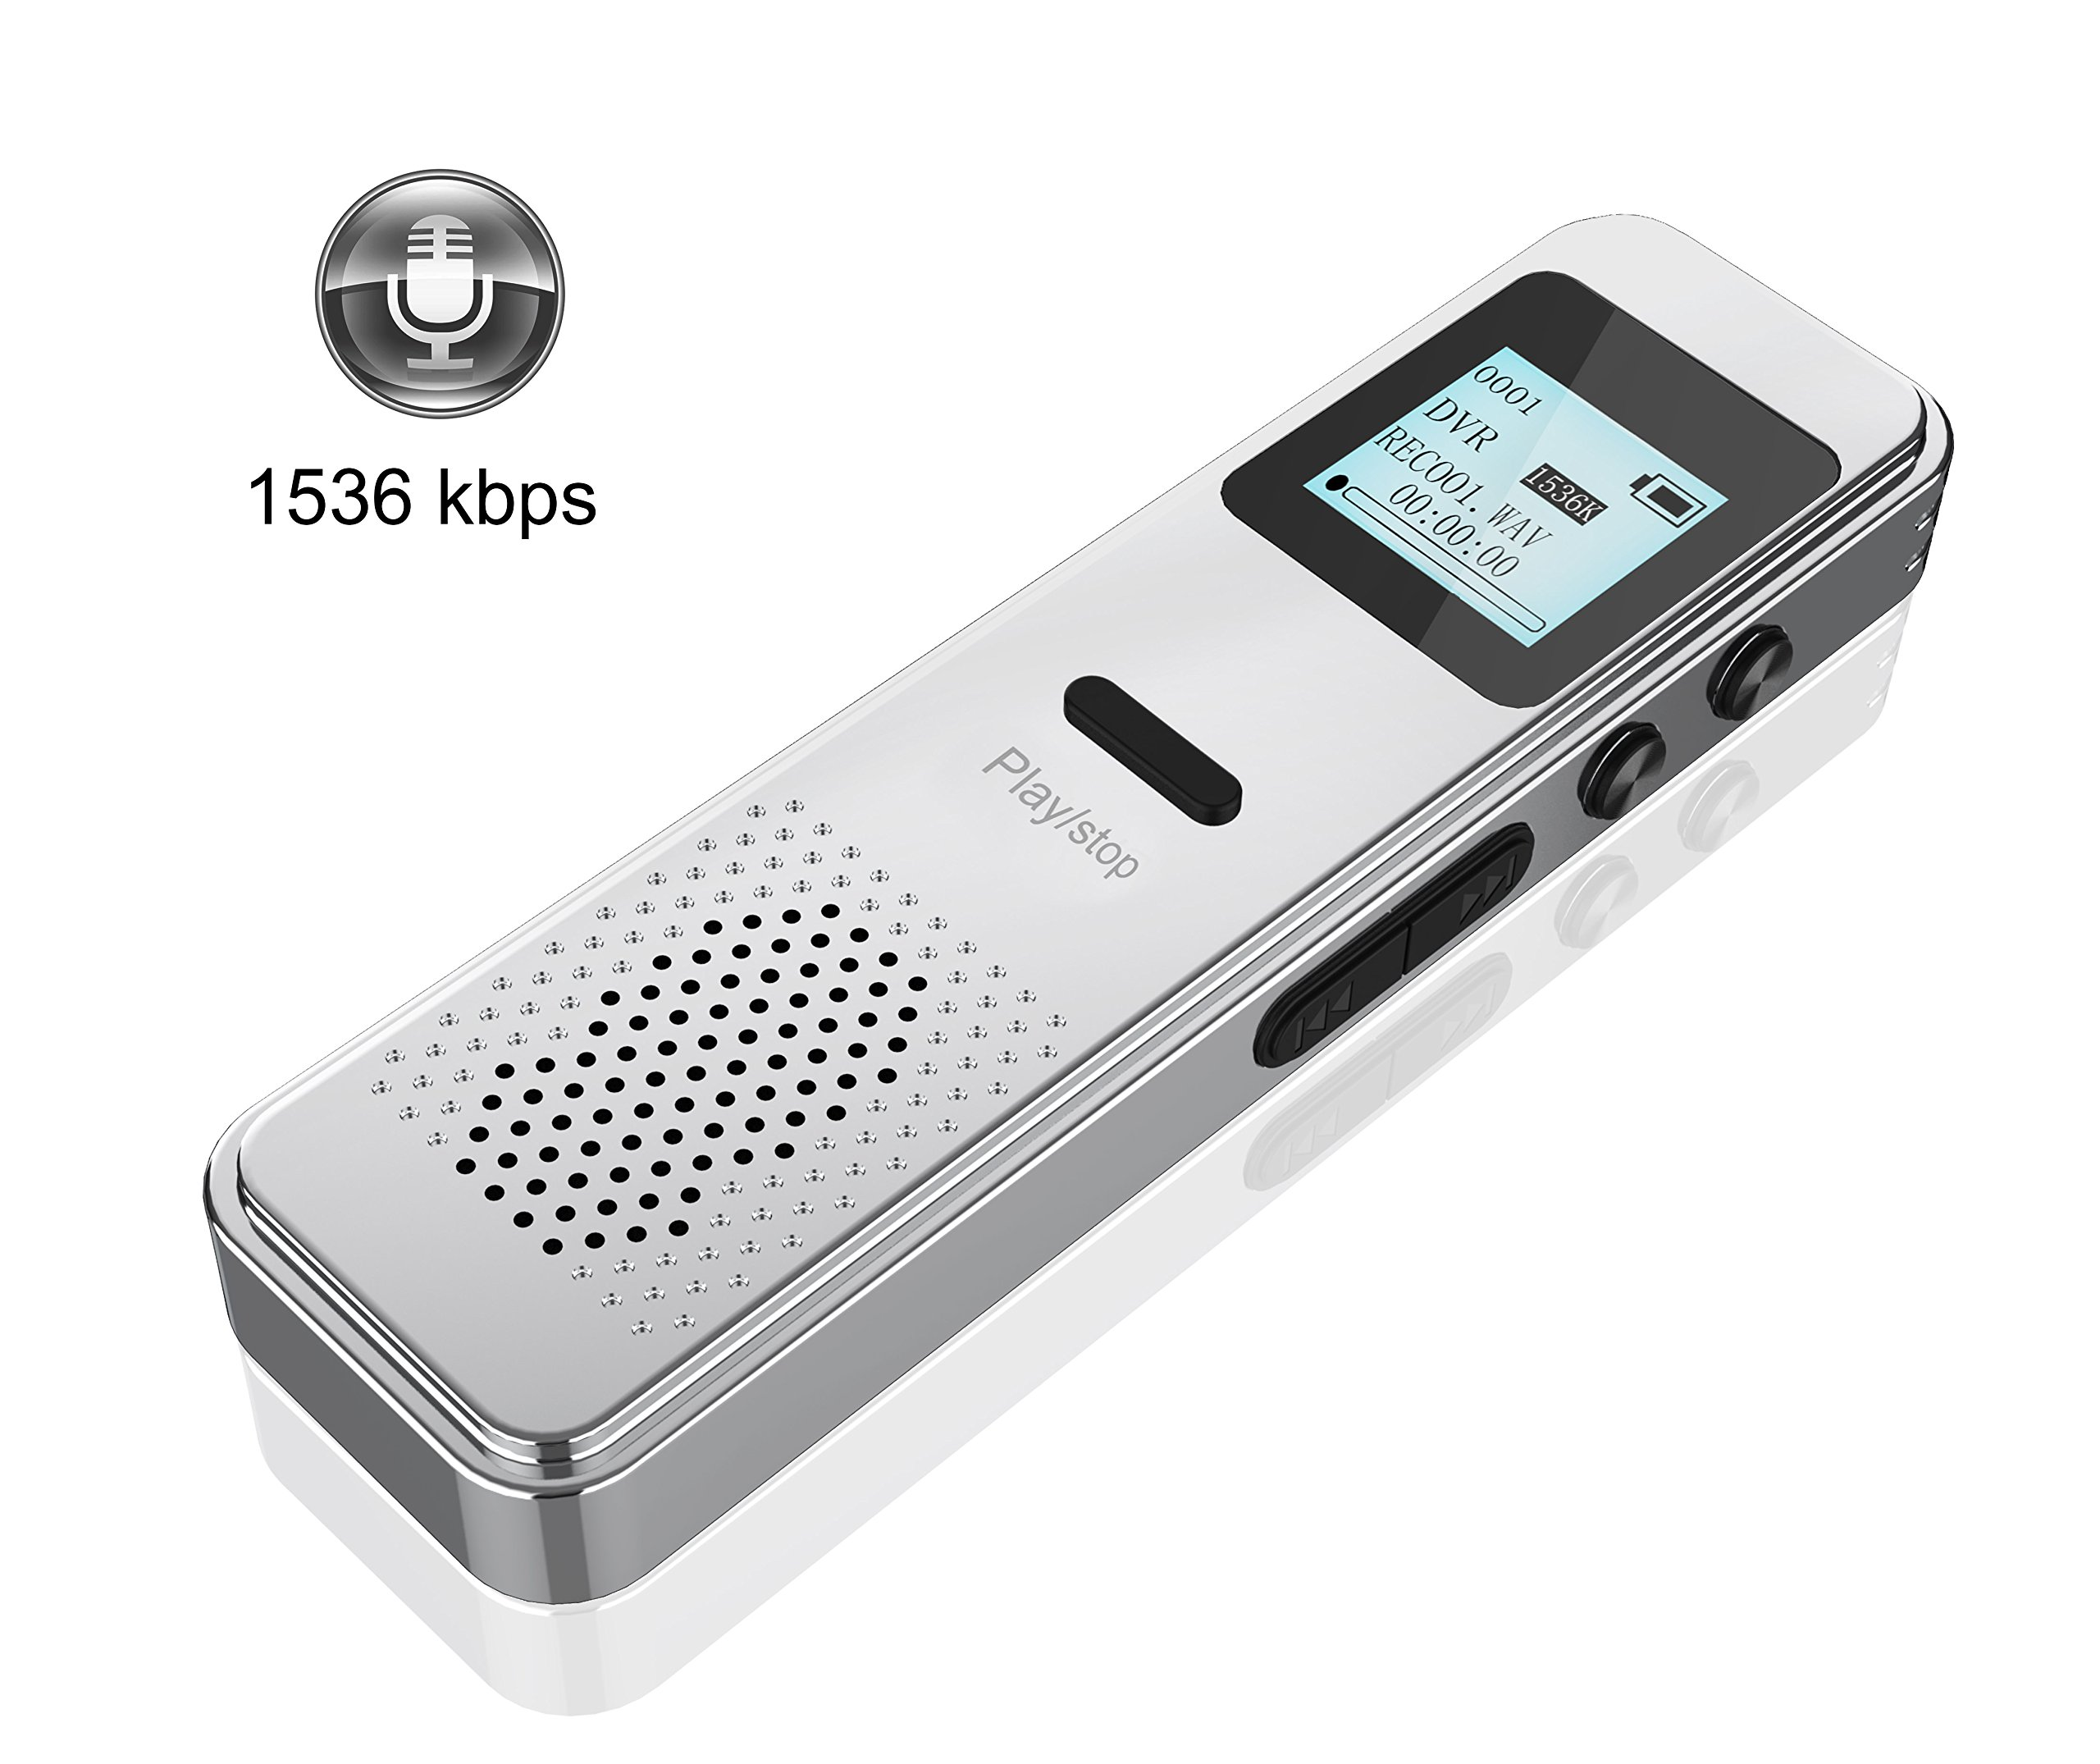 8G Digital Voice Recorder,Valoin 2018 Latest Digital Audio Sound Dictaphone Lossless Sound 1536 kbps Metal Body Voice Recorder for Lecture Meeting Interview Recording